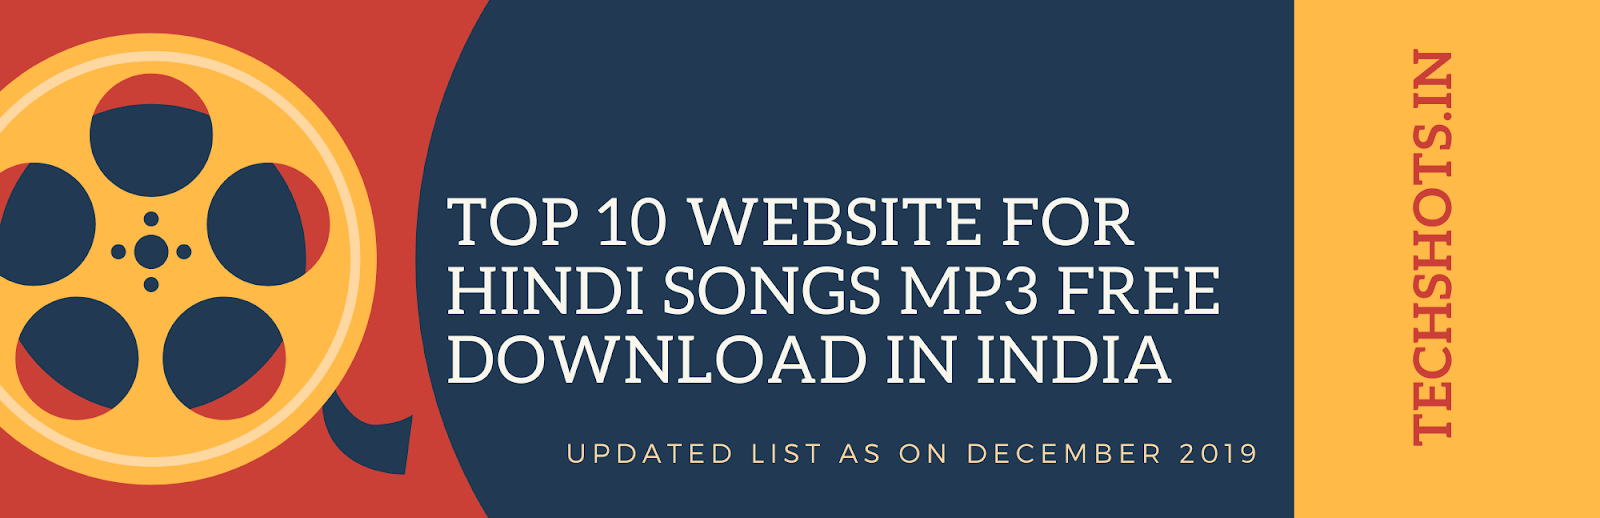 Top 10 Website For Hindi Songs Mp3 Free Download In India Techshots Listen to latest and trending bollywood hindi songs online for free with jiosaavn anytime, anywhere. hindi songs mp3 free download in india